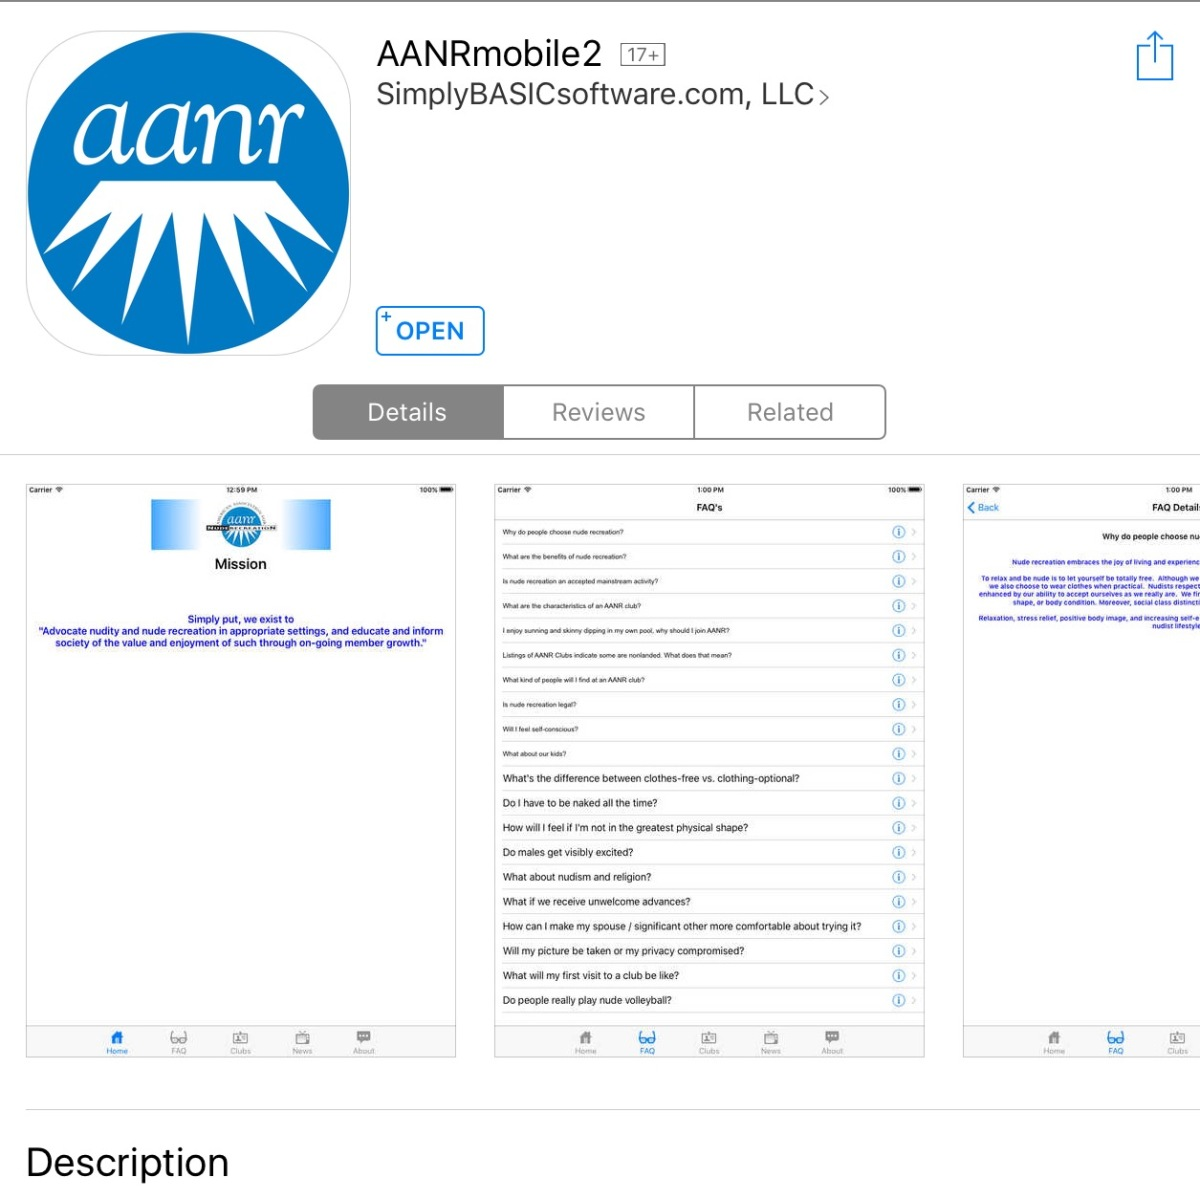 AANR mobile 2 AppReview